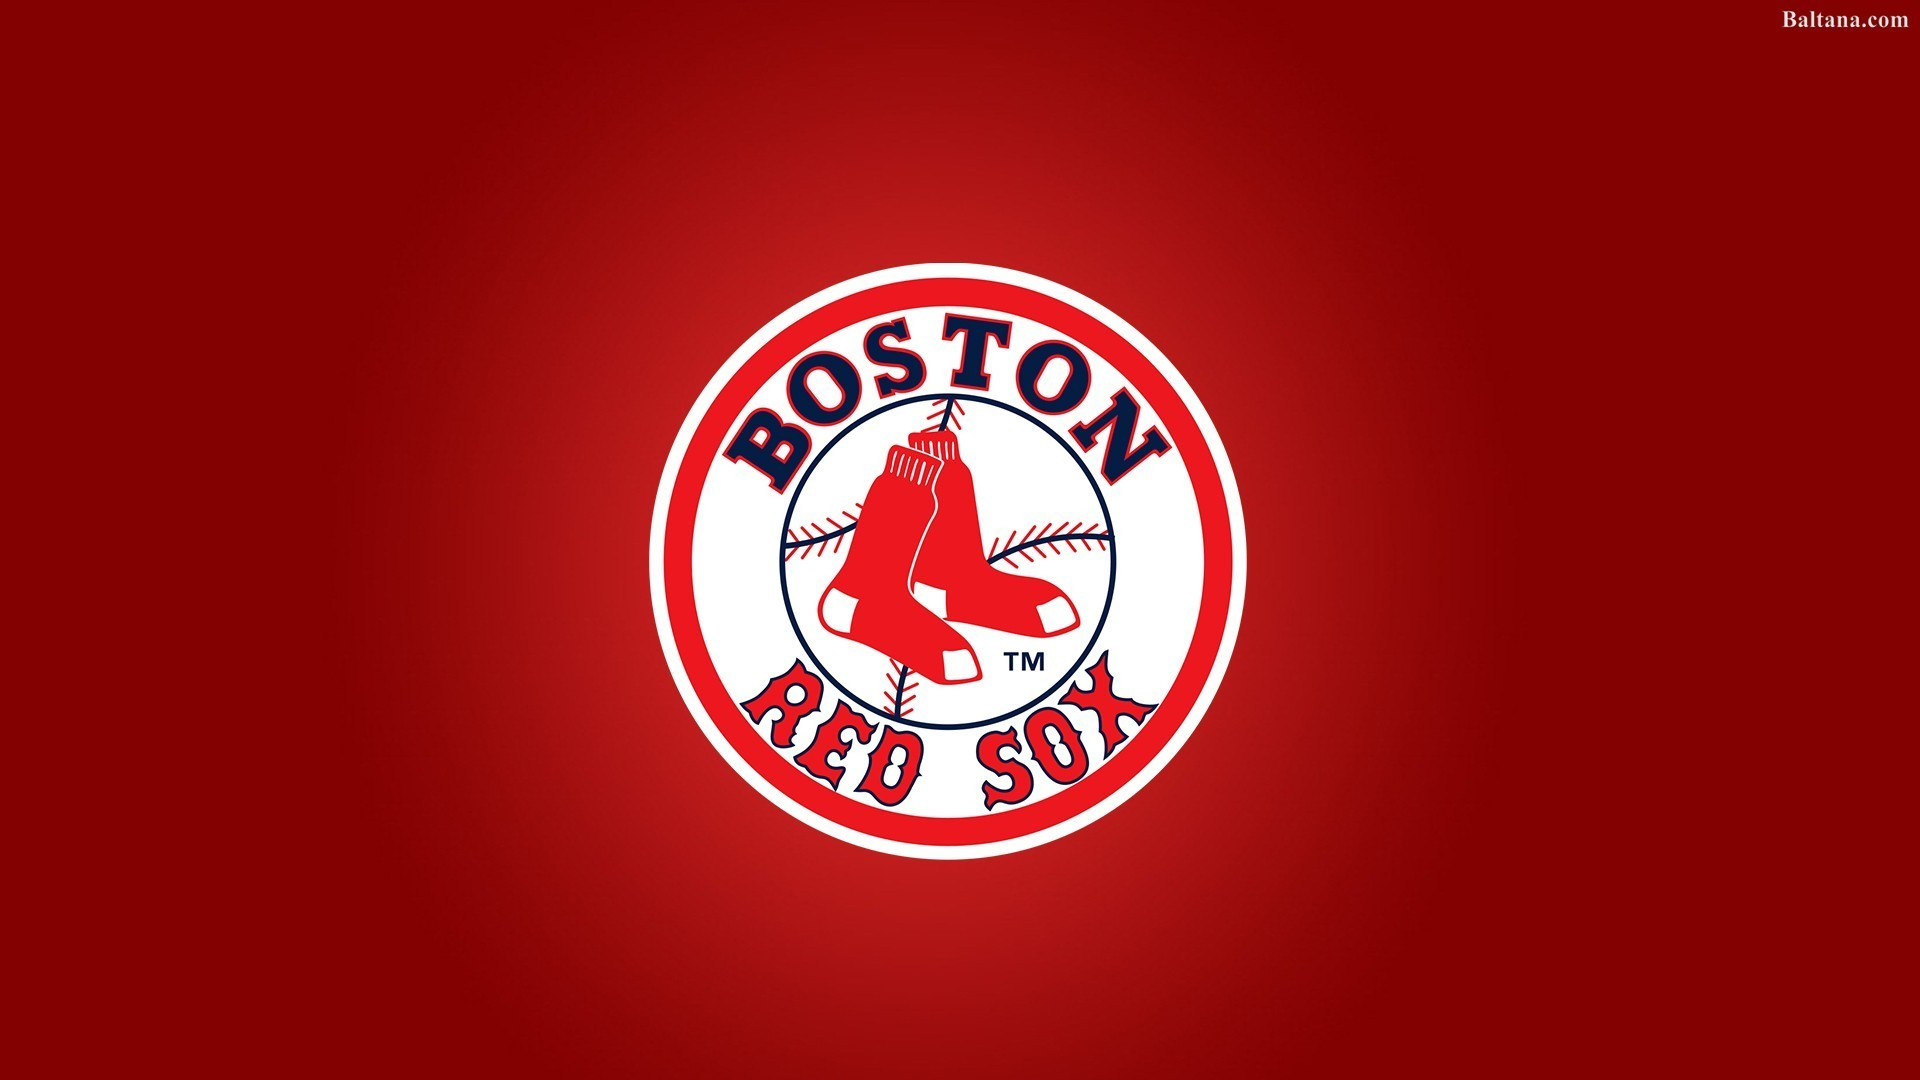 Res: 1920x1080, Boston Red Sox HD Desktop Wallpaper 33005